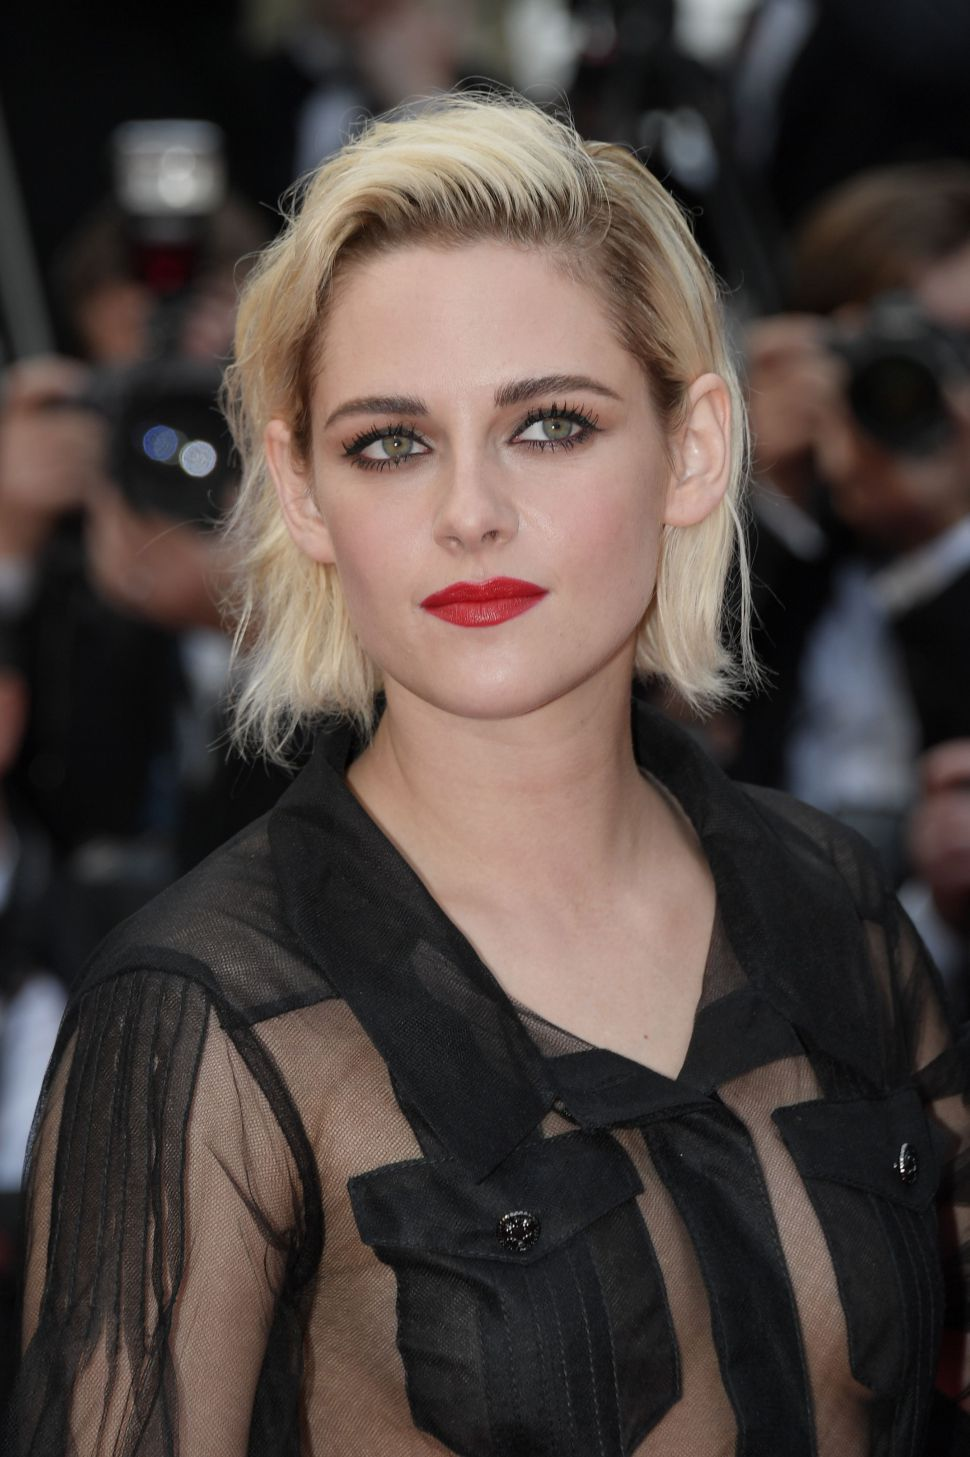 Mandatory Credit: Photo by Maria Laura Antonelli/REX/Shutterstock (5682774v) Kristen Stewart'Cafe Society' premiere and opening ceremony, 69th Cannes Film Festival, France - 11 May 2016